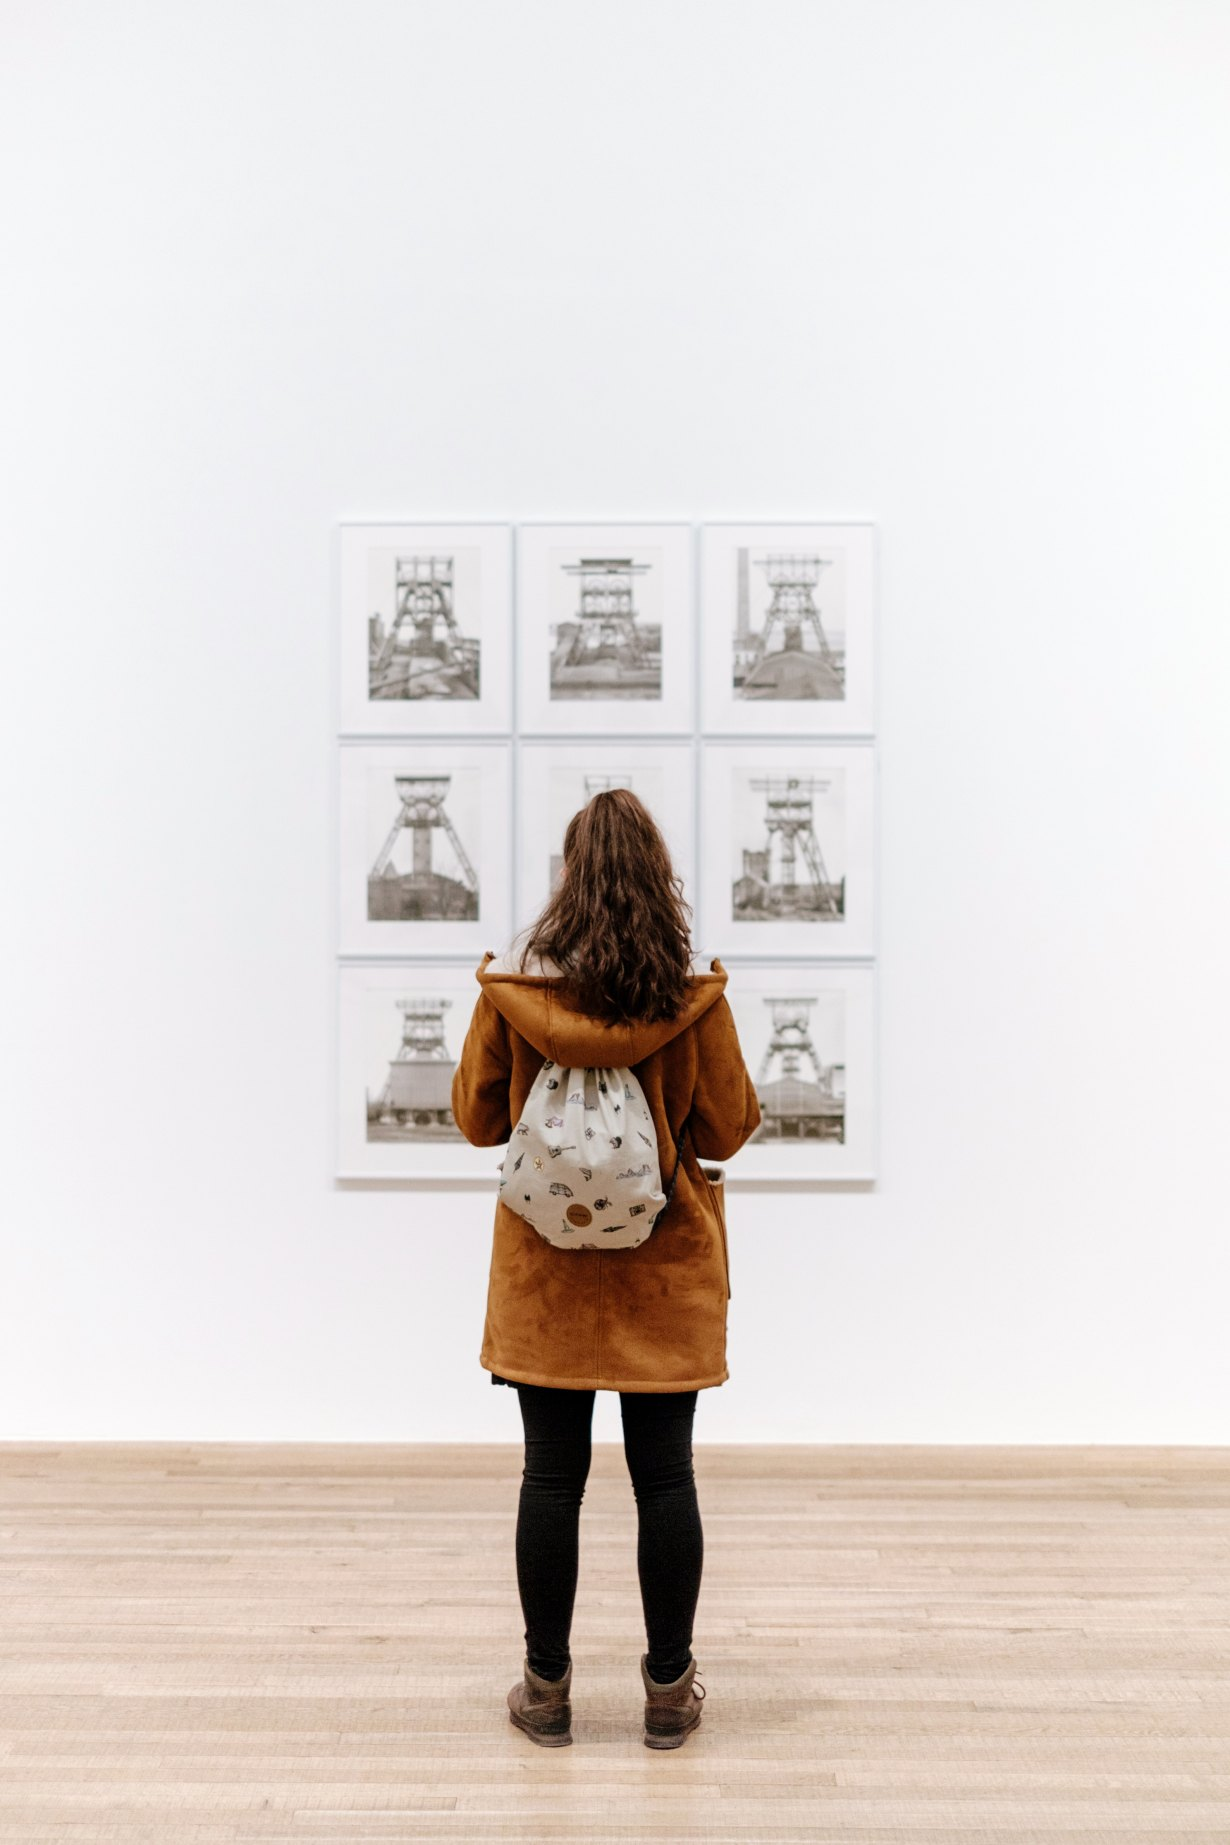 A girl looking at a gallery wall in the Tate Modern, London. By Samuel Zeller.